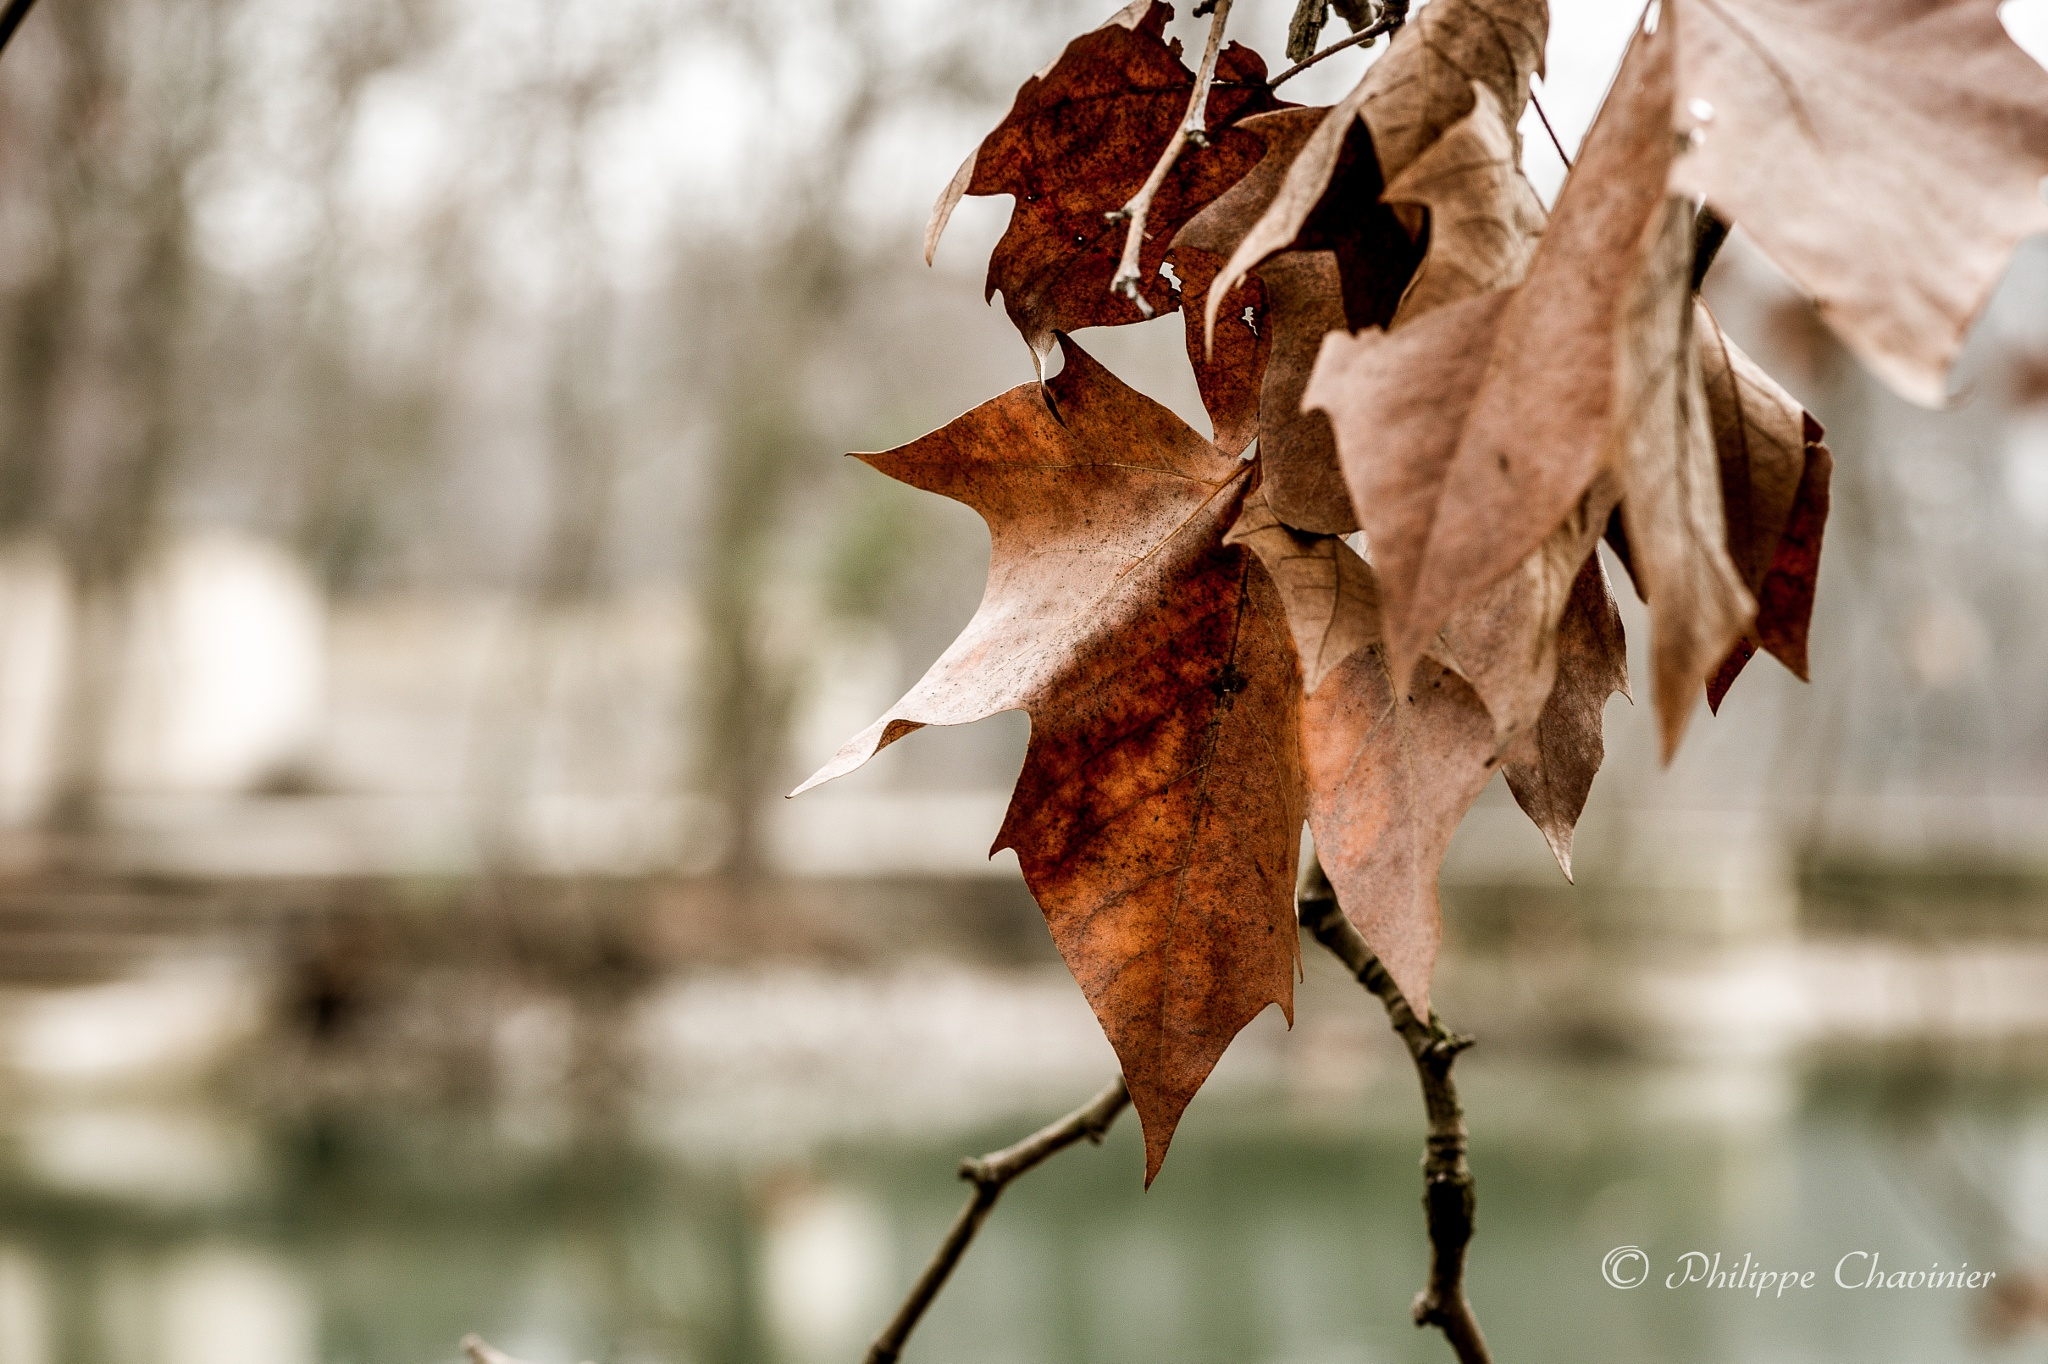 Winter leaves by Philippe Chavinier